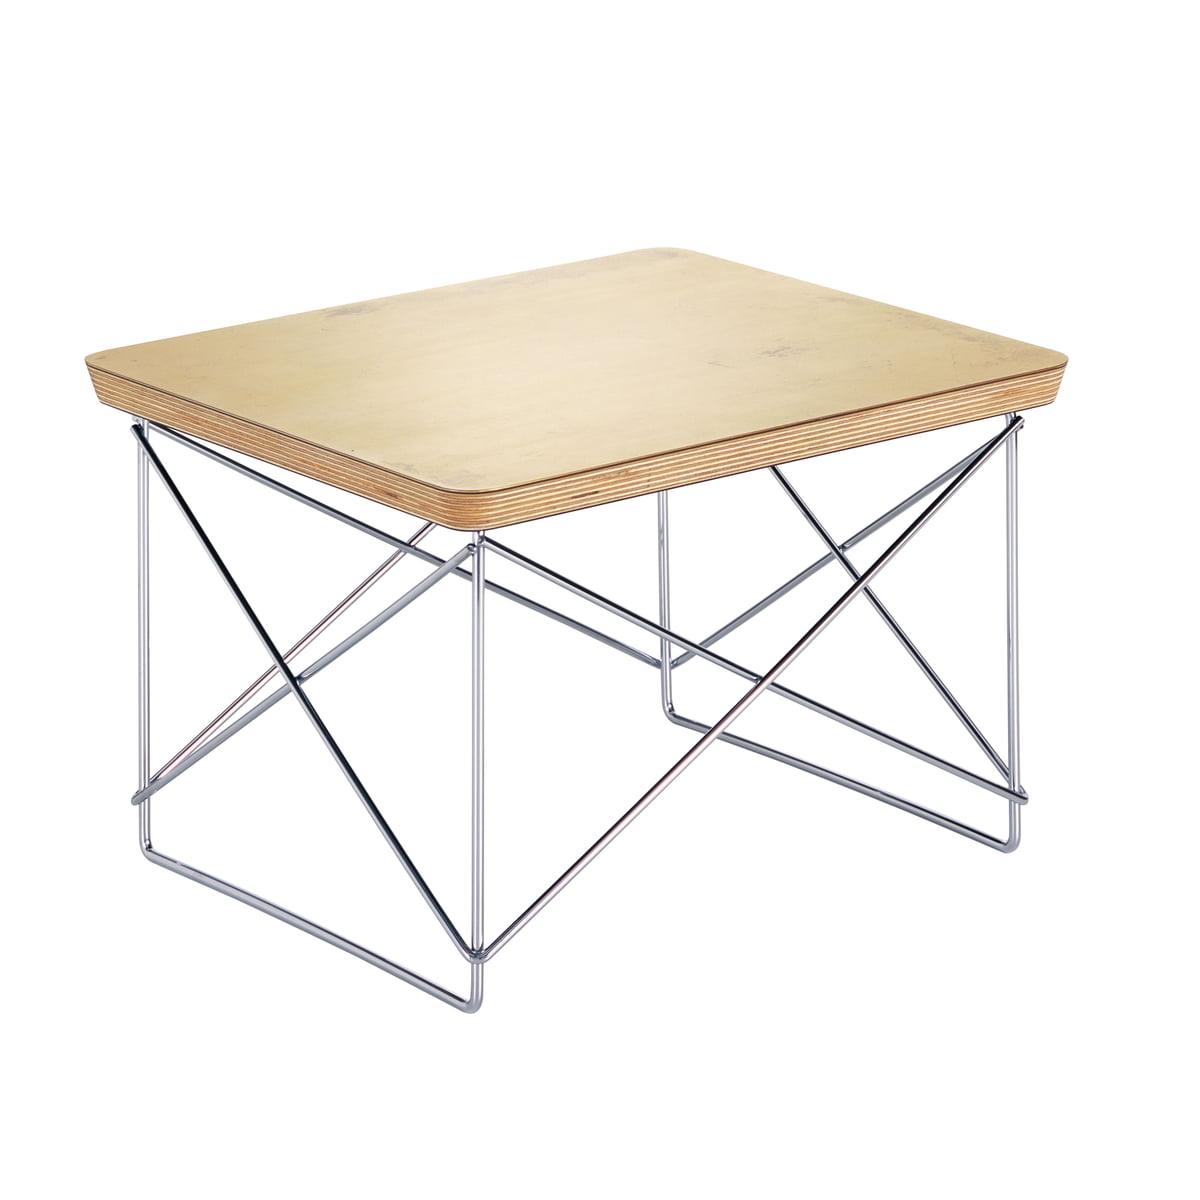 Eames Occasional Table LTR, Blattgold / chrom